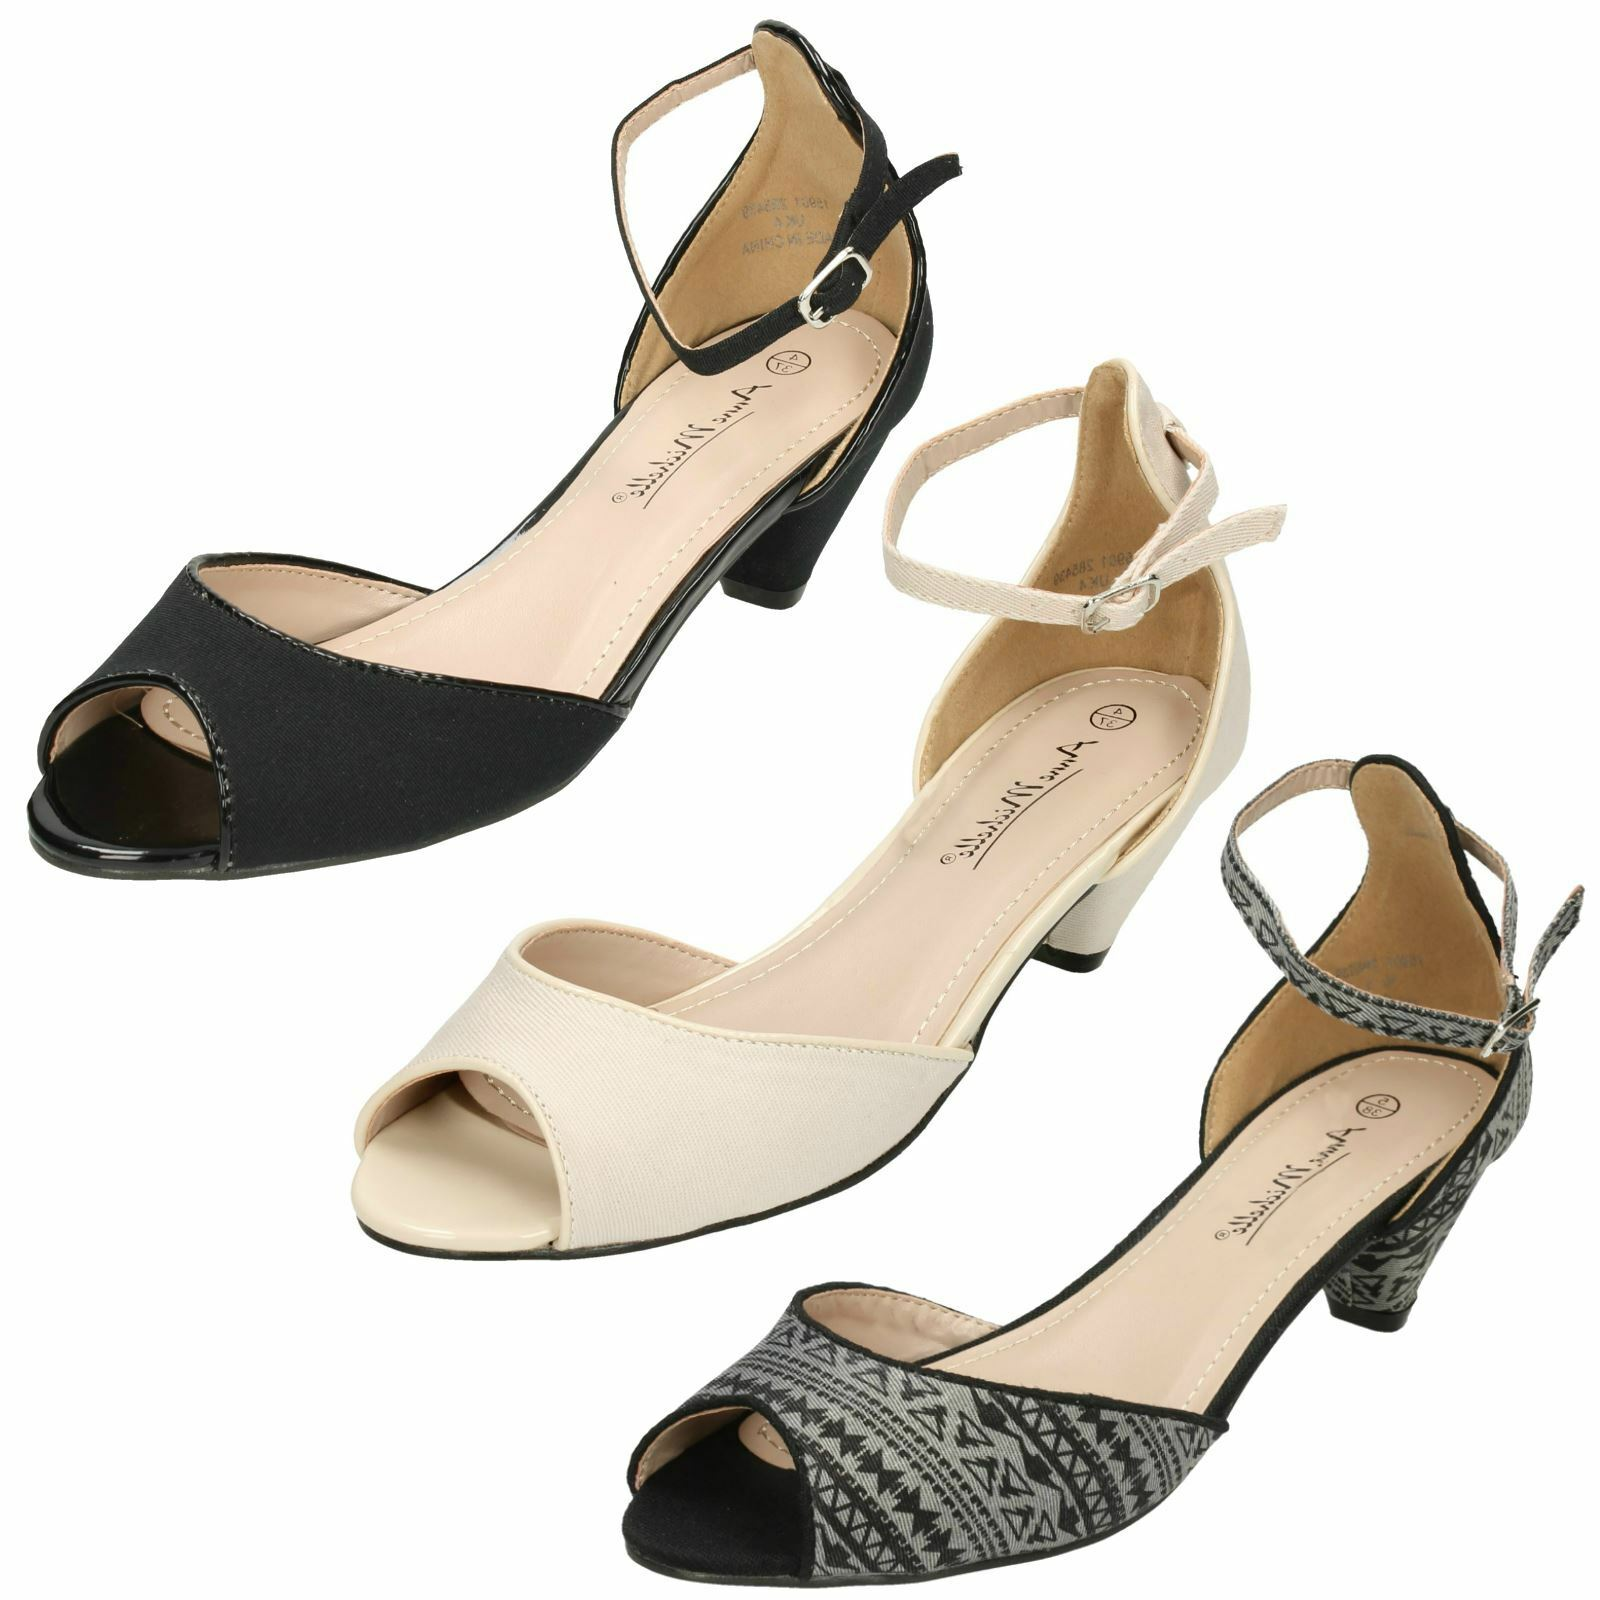 Mr/Ms Ladies Anne Michelle price Peep Toe 'Sandals' Clearance price Michelle Online export store comfortable 7ad13c